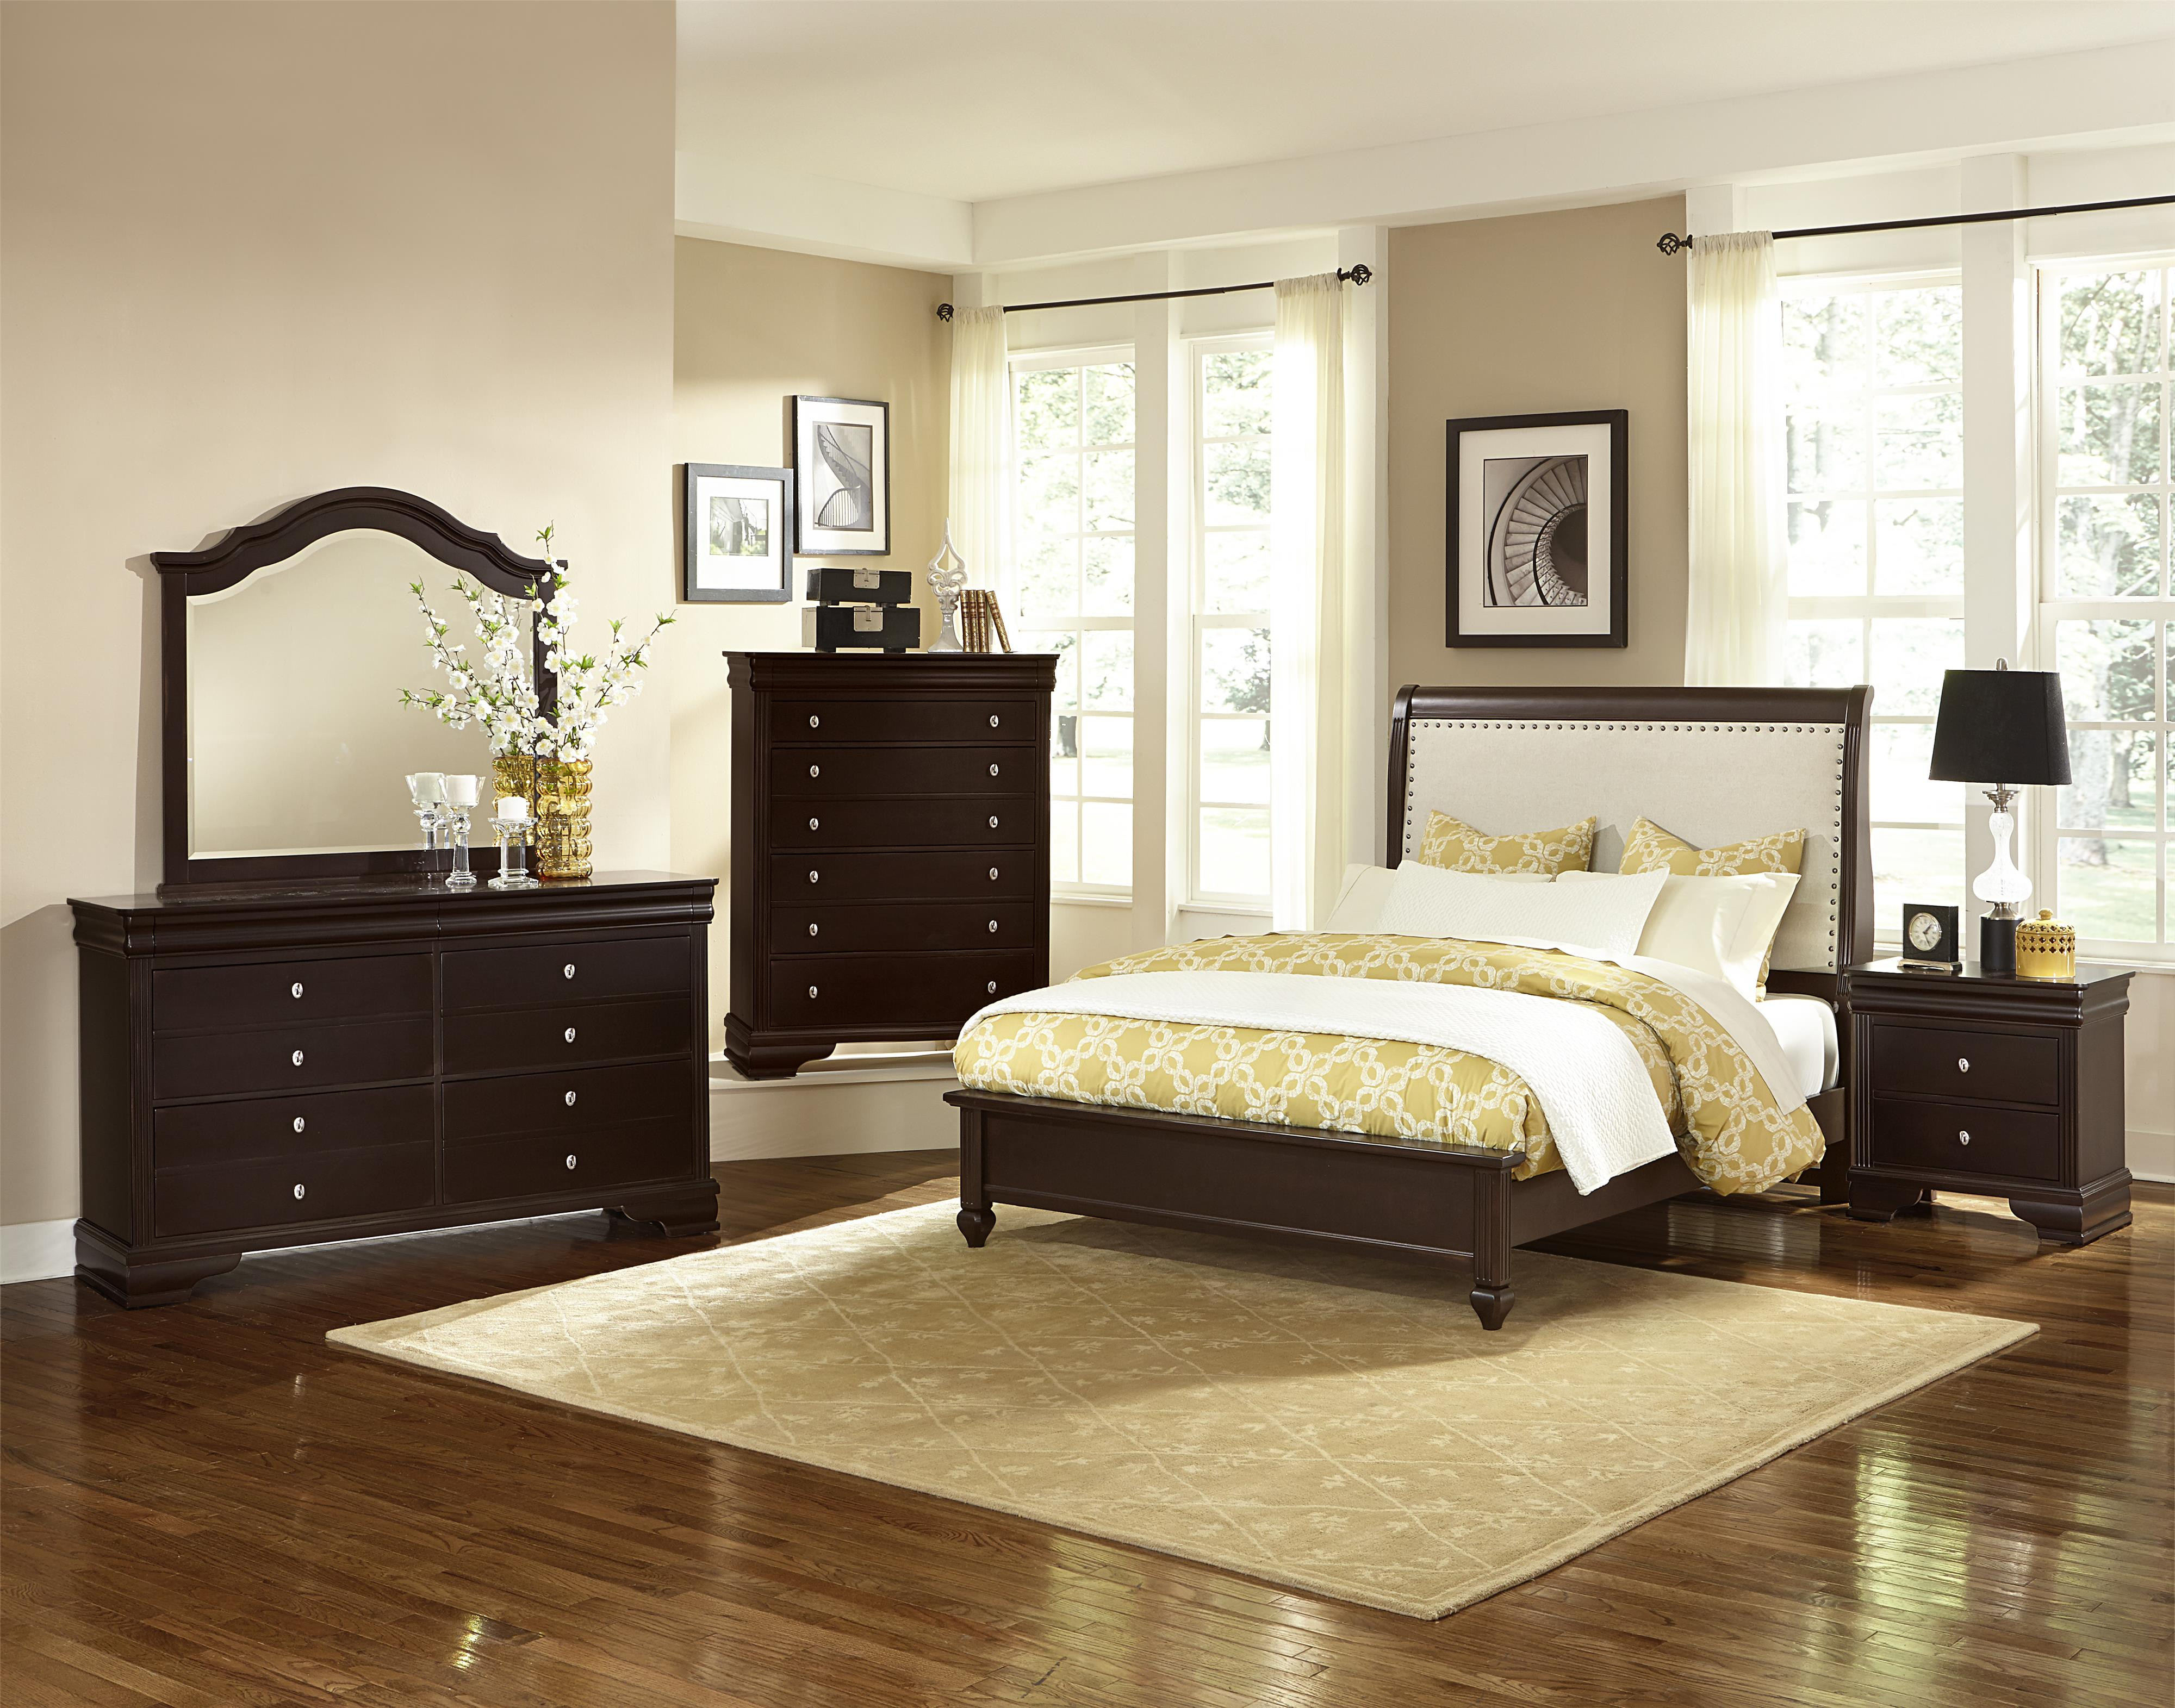 Vaughan Bassett French Market King Bedroom Group - Item Number: 380 K Bedroom Group 3